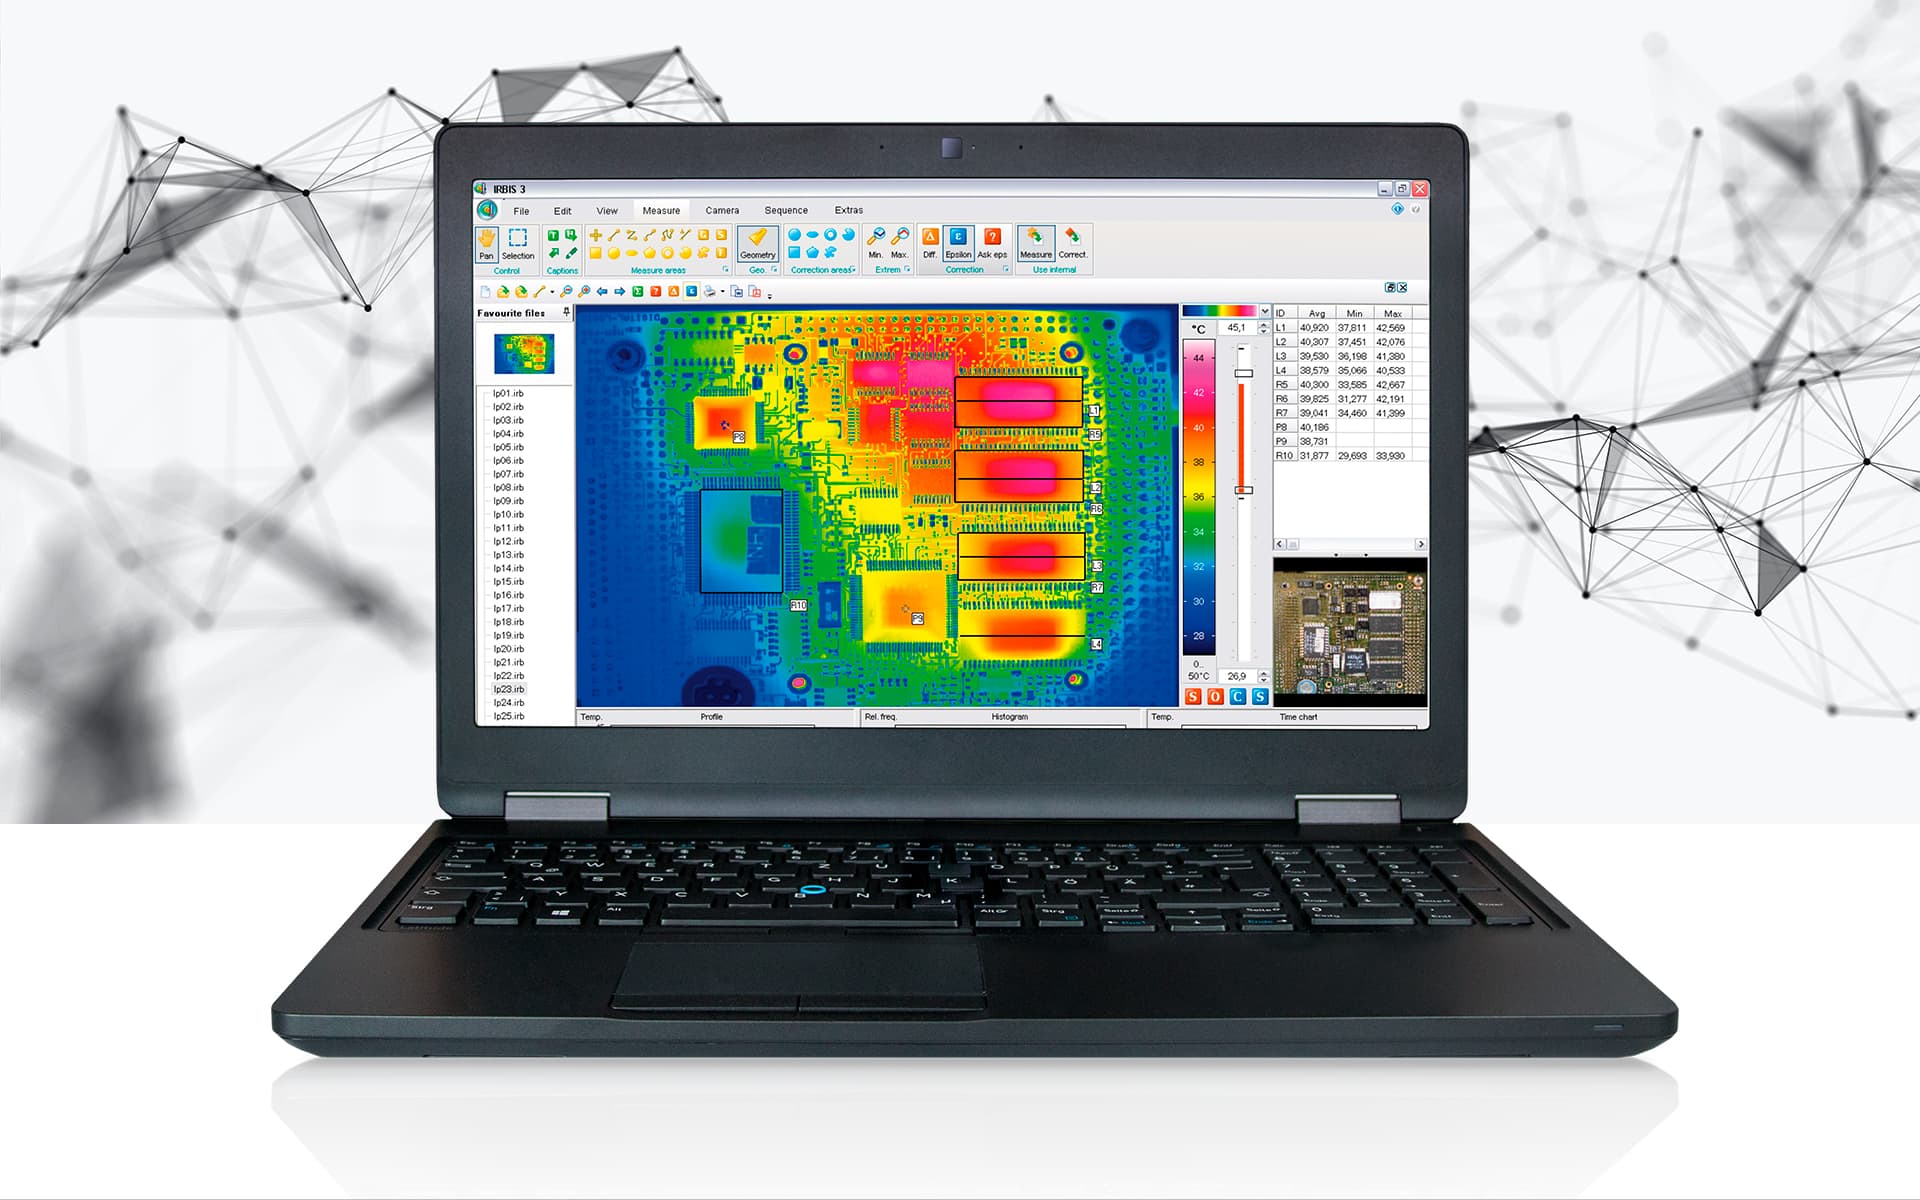 Thermal imaging software IRBIS 3 from InfraTec - Picture Credits: © iStock.com / from2015